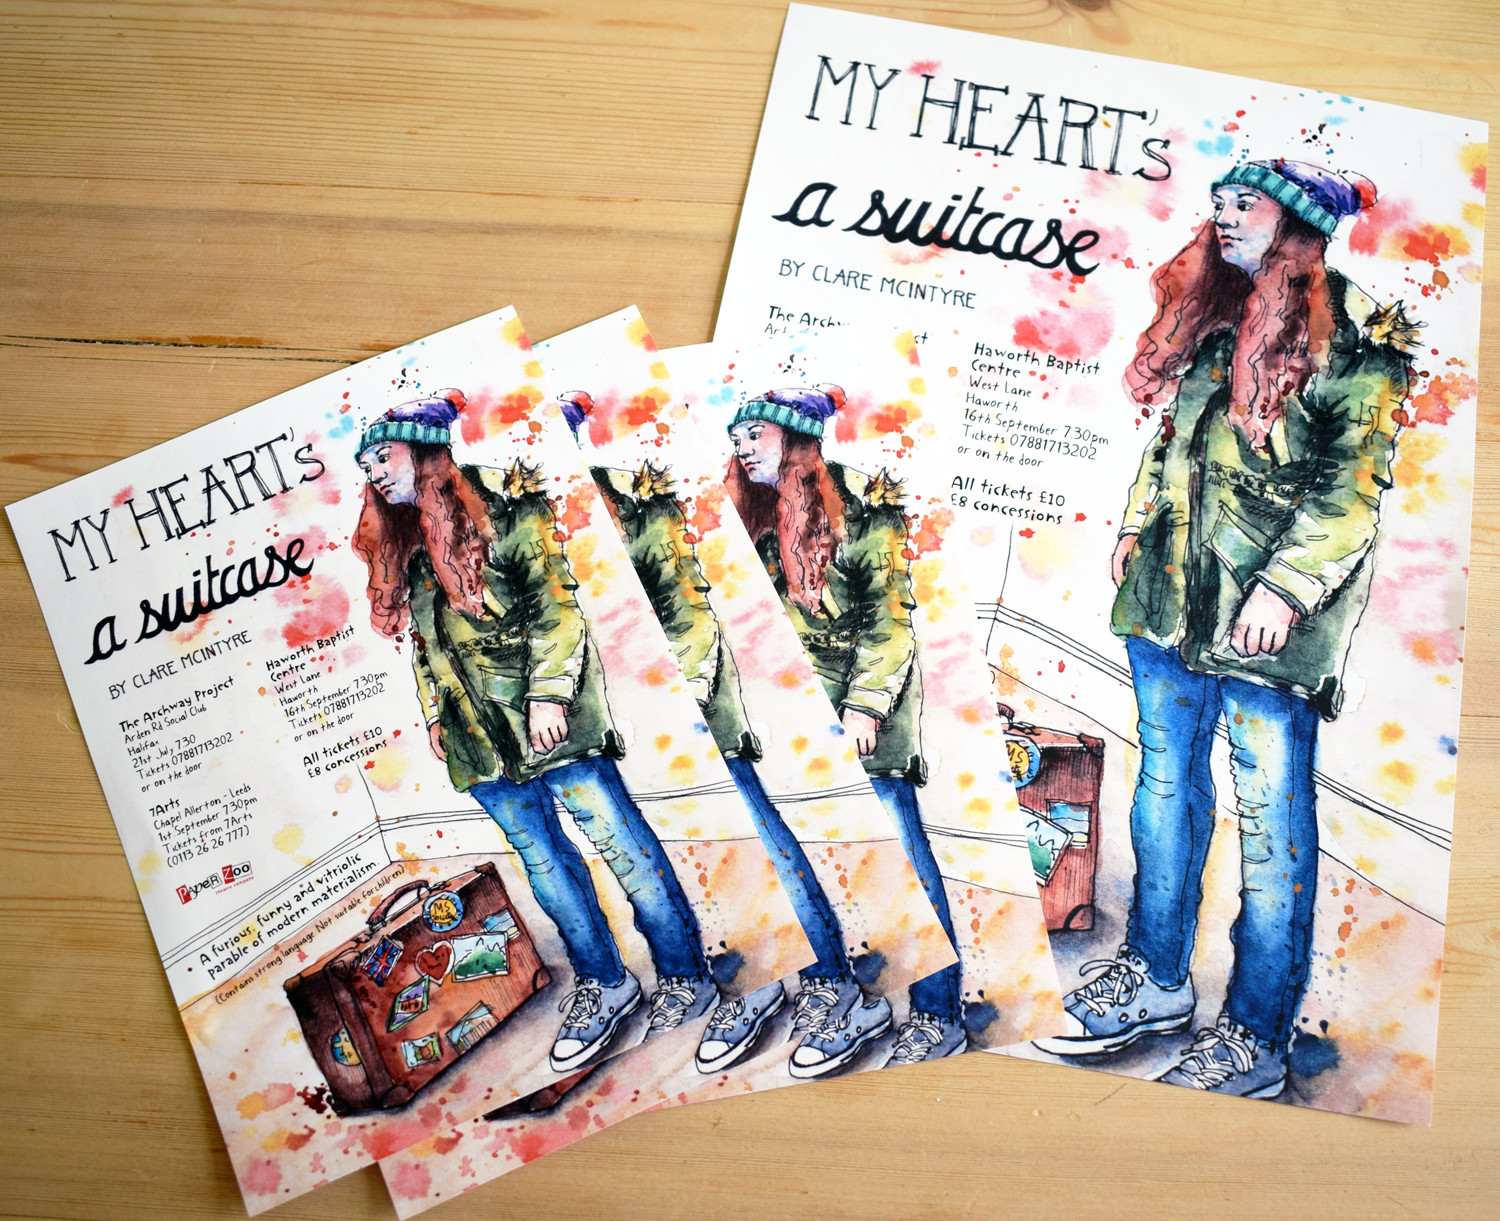 Theatre poster illustrations by Sophie Peanut. Leaflets and posters for My Heart's a suitcase by Clare McIntyre